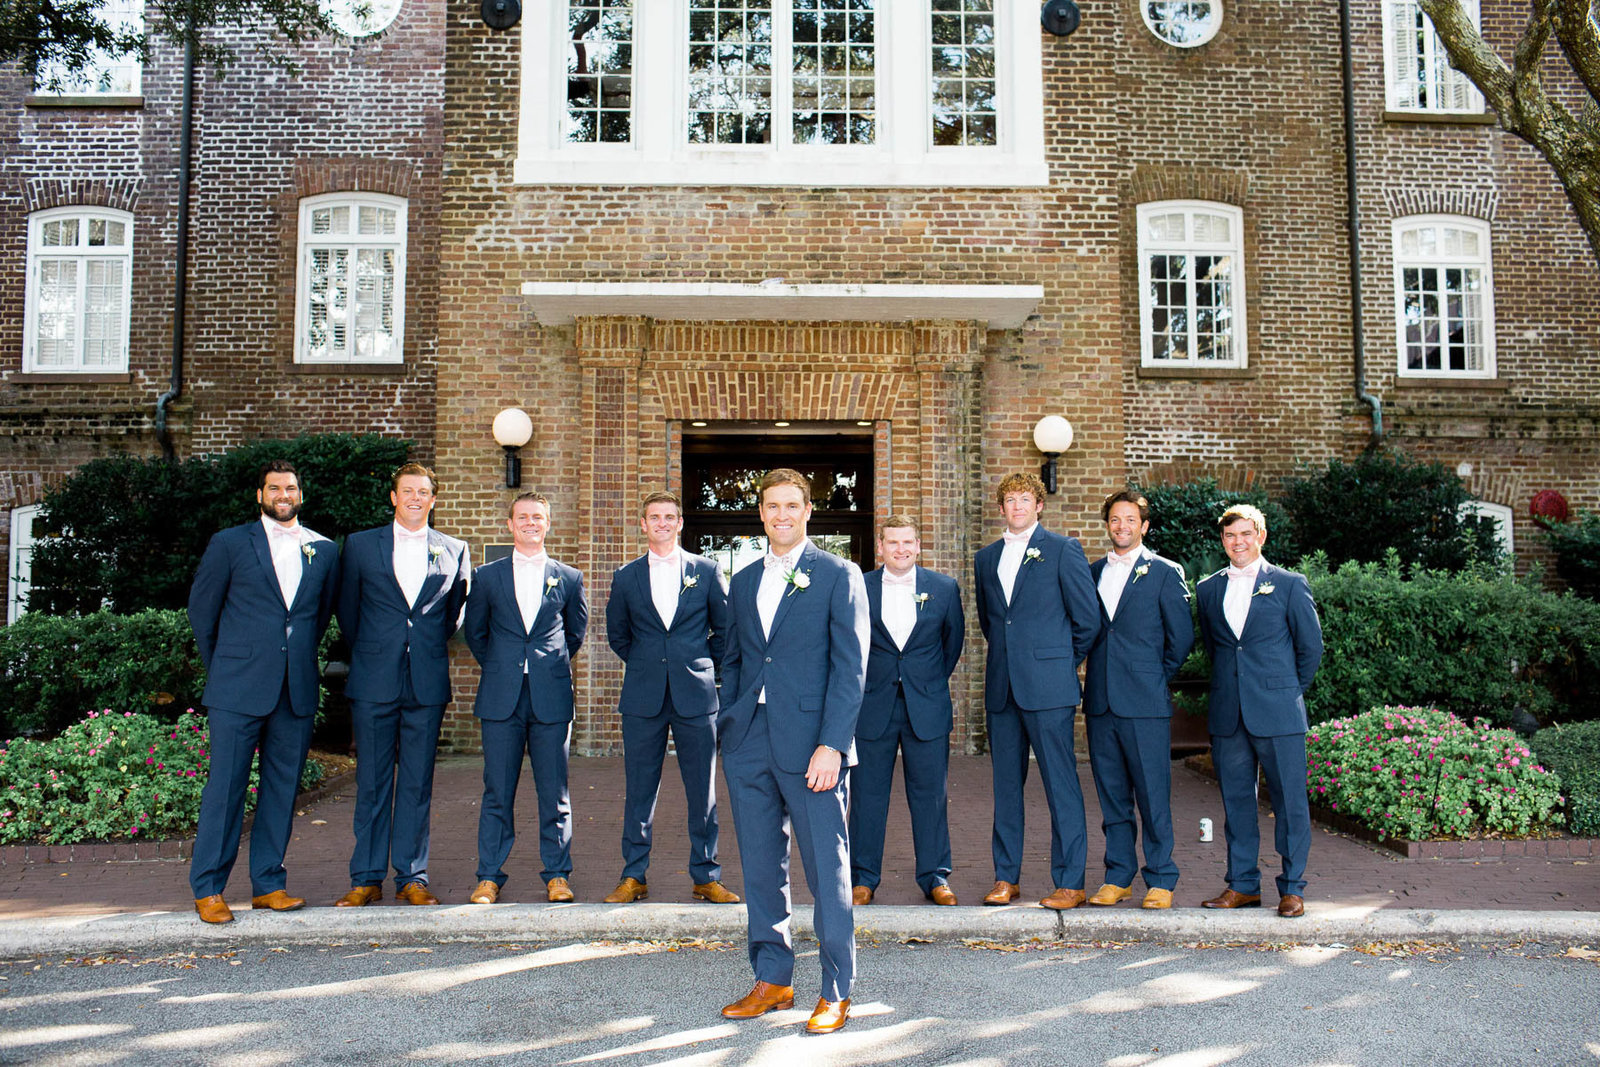 Groomsmen line up in front of the Rice Mill Building, Charleston, South Carolina